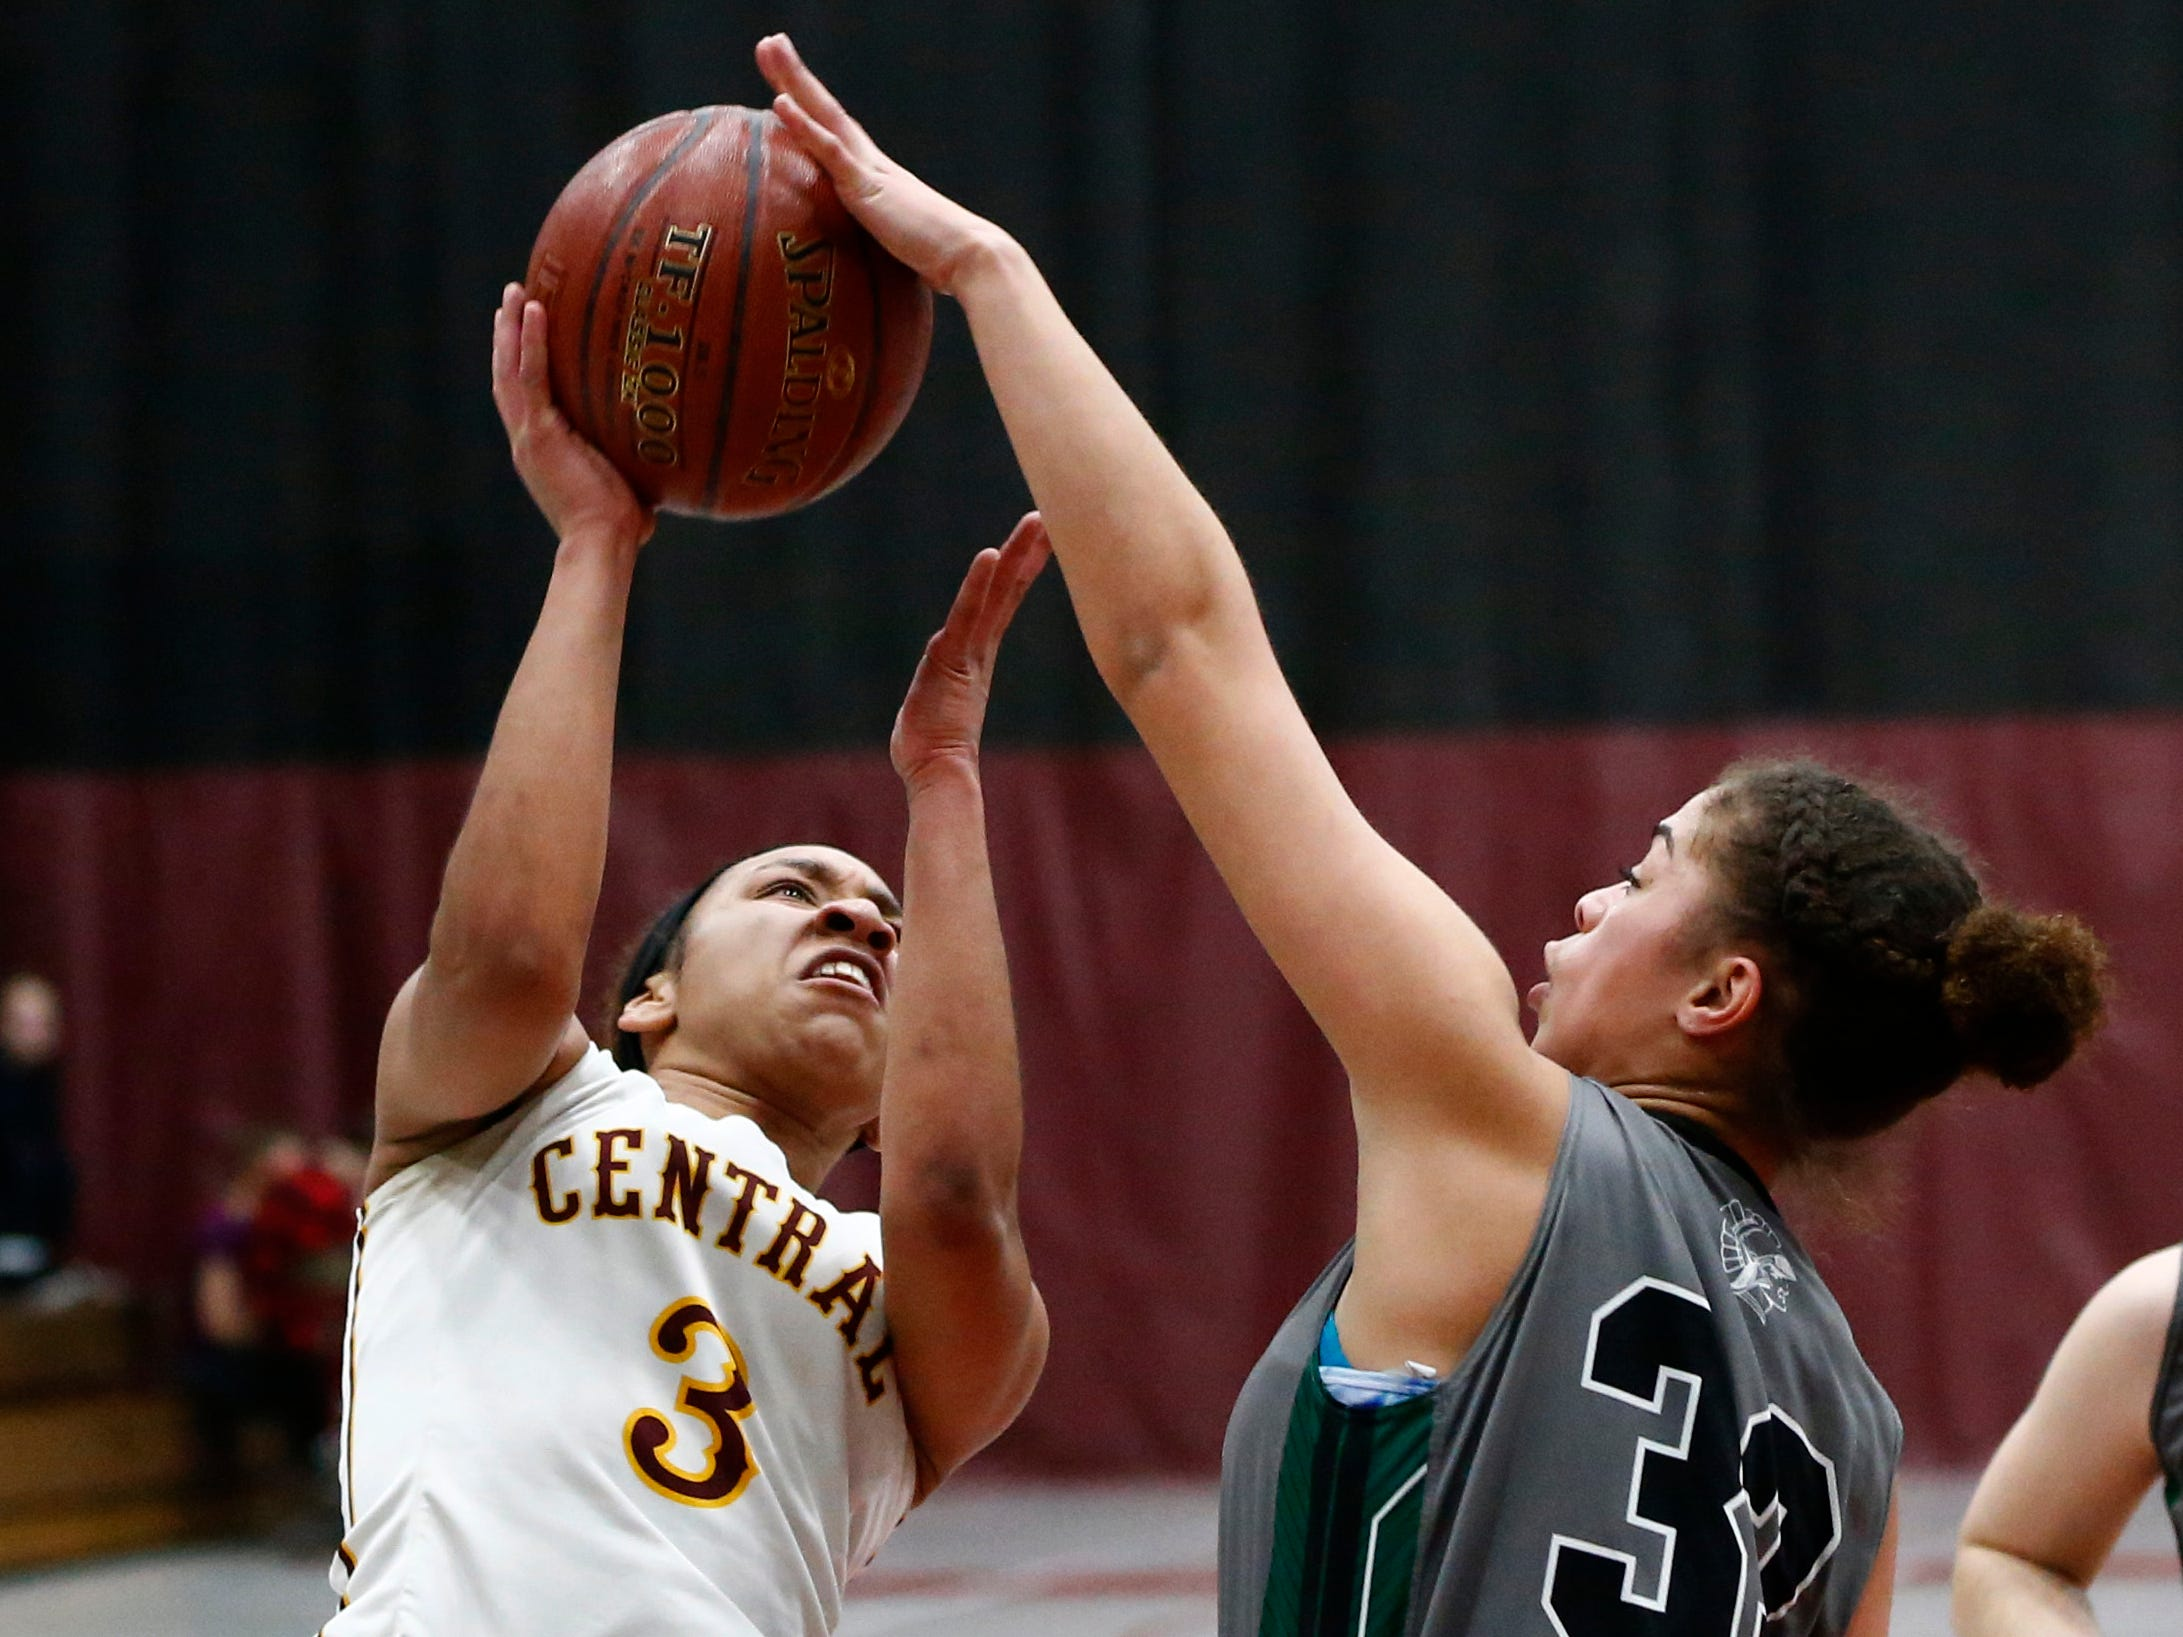 West Allis Central's Jaylah Baker is blocked from the basket by Wauwatosa West's Janessa Runyan at Central on Jan. 3.